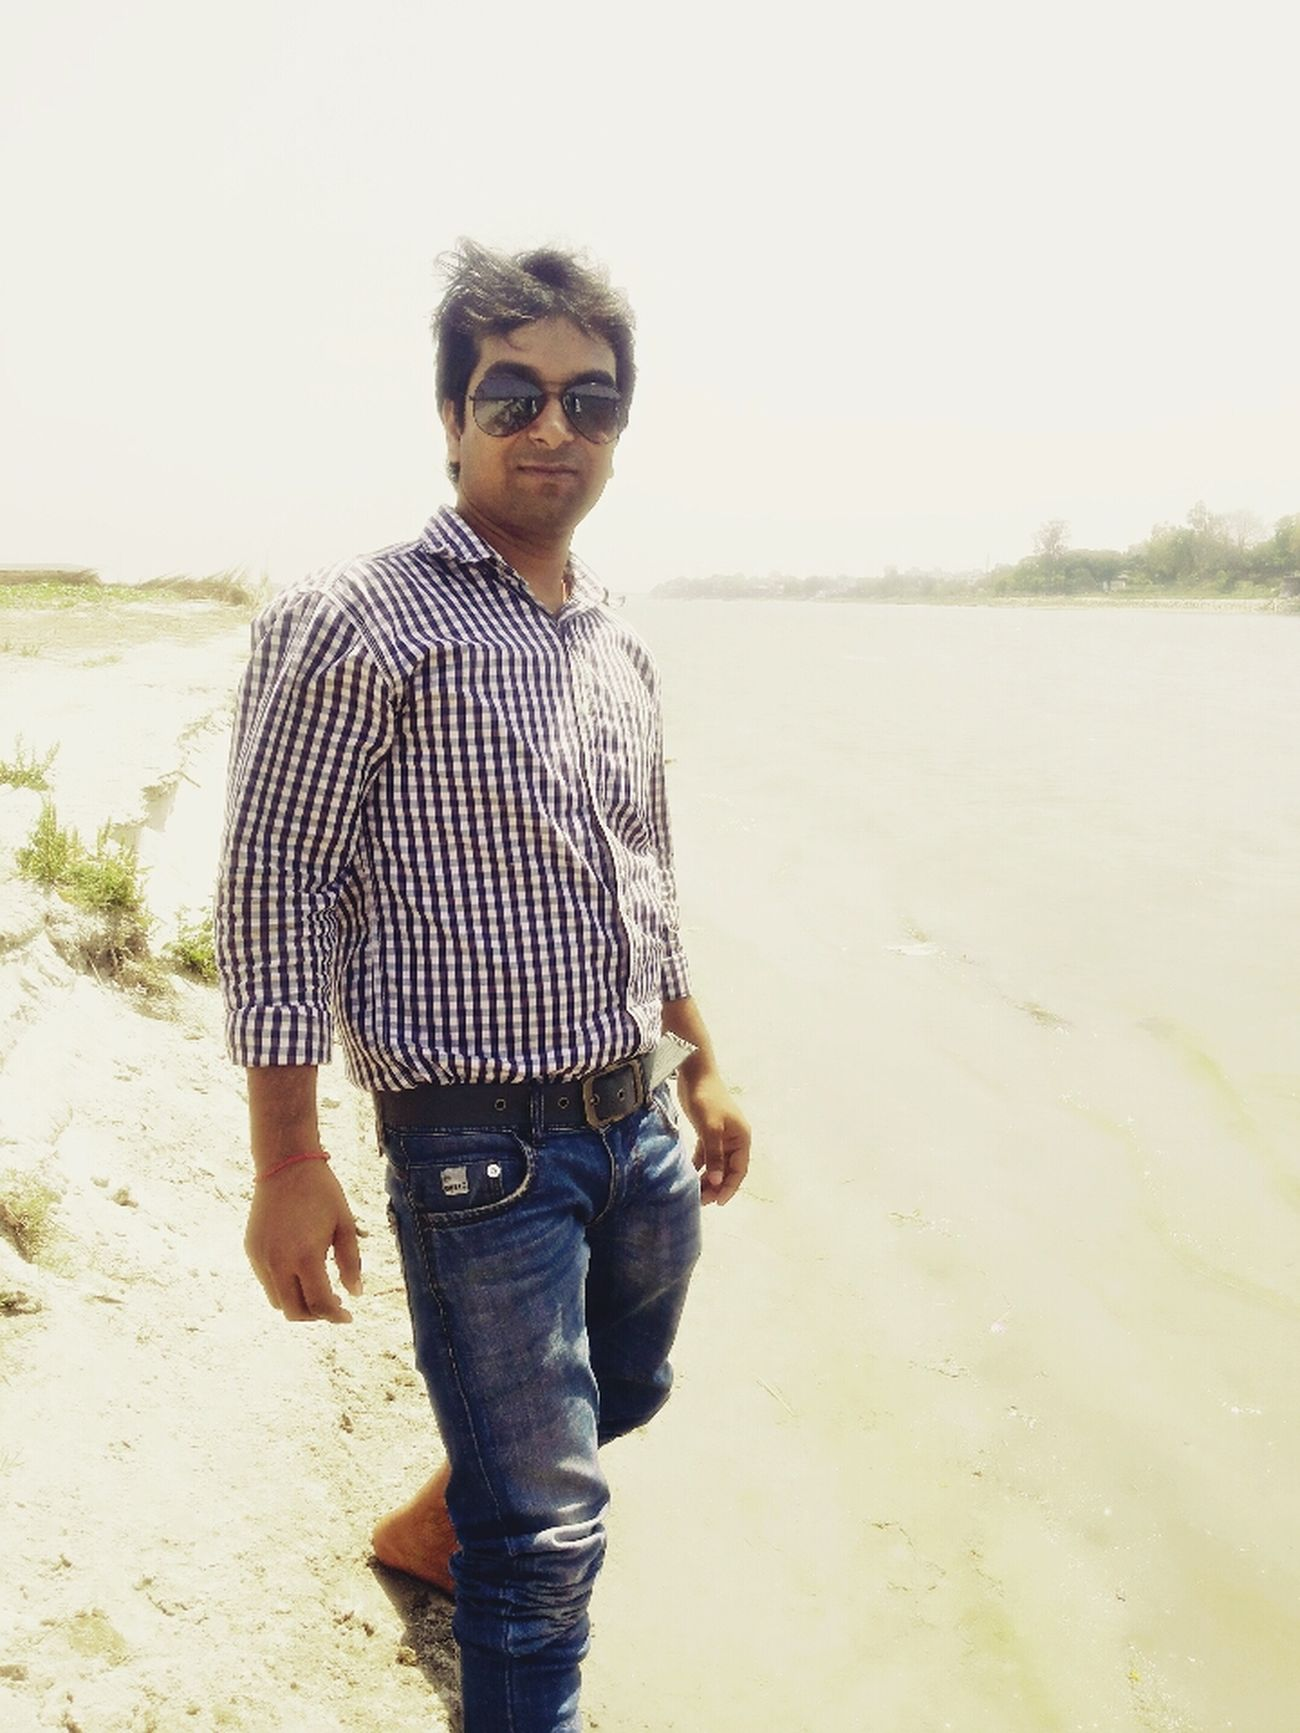 River side....Kanpur Relaxing Taking Photos Check This Out Enjoying Life